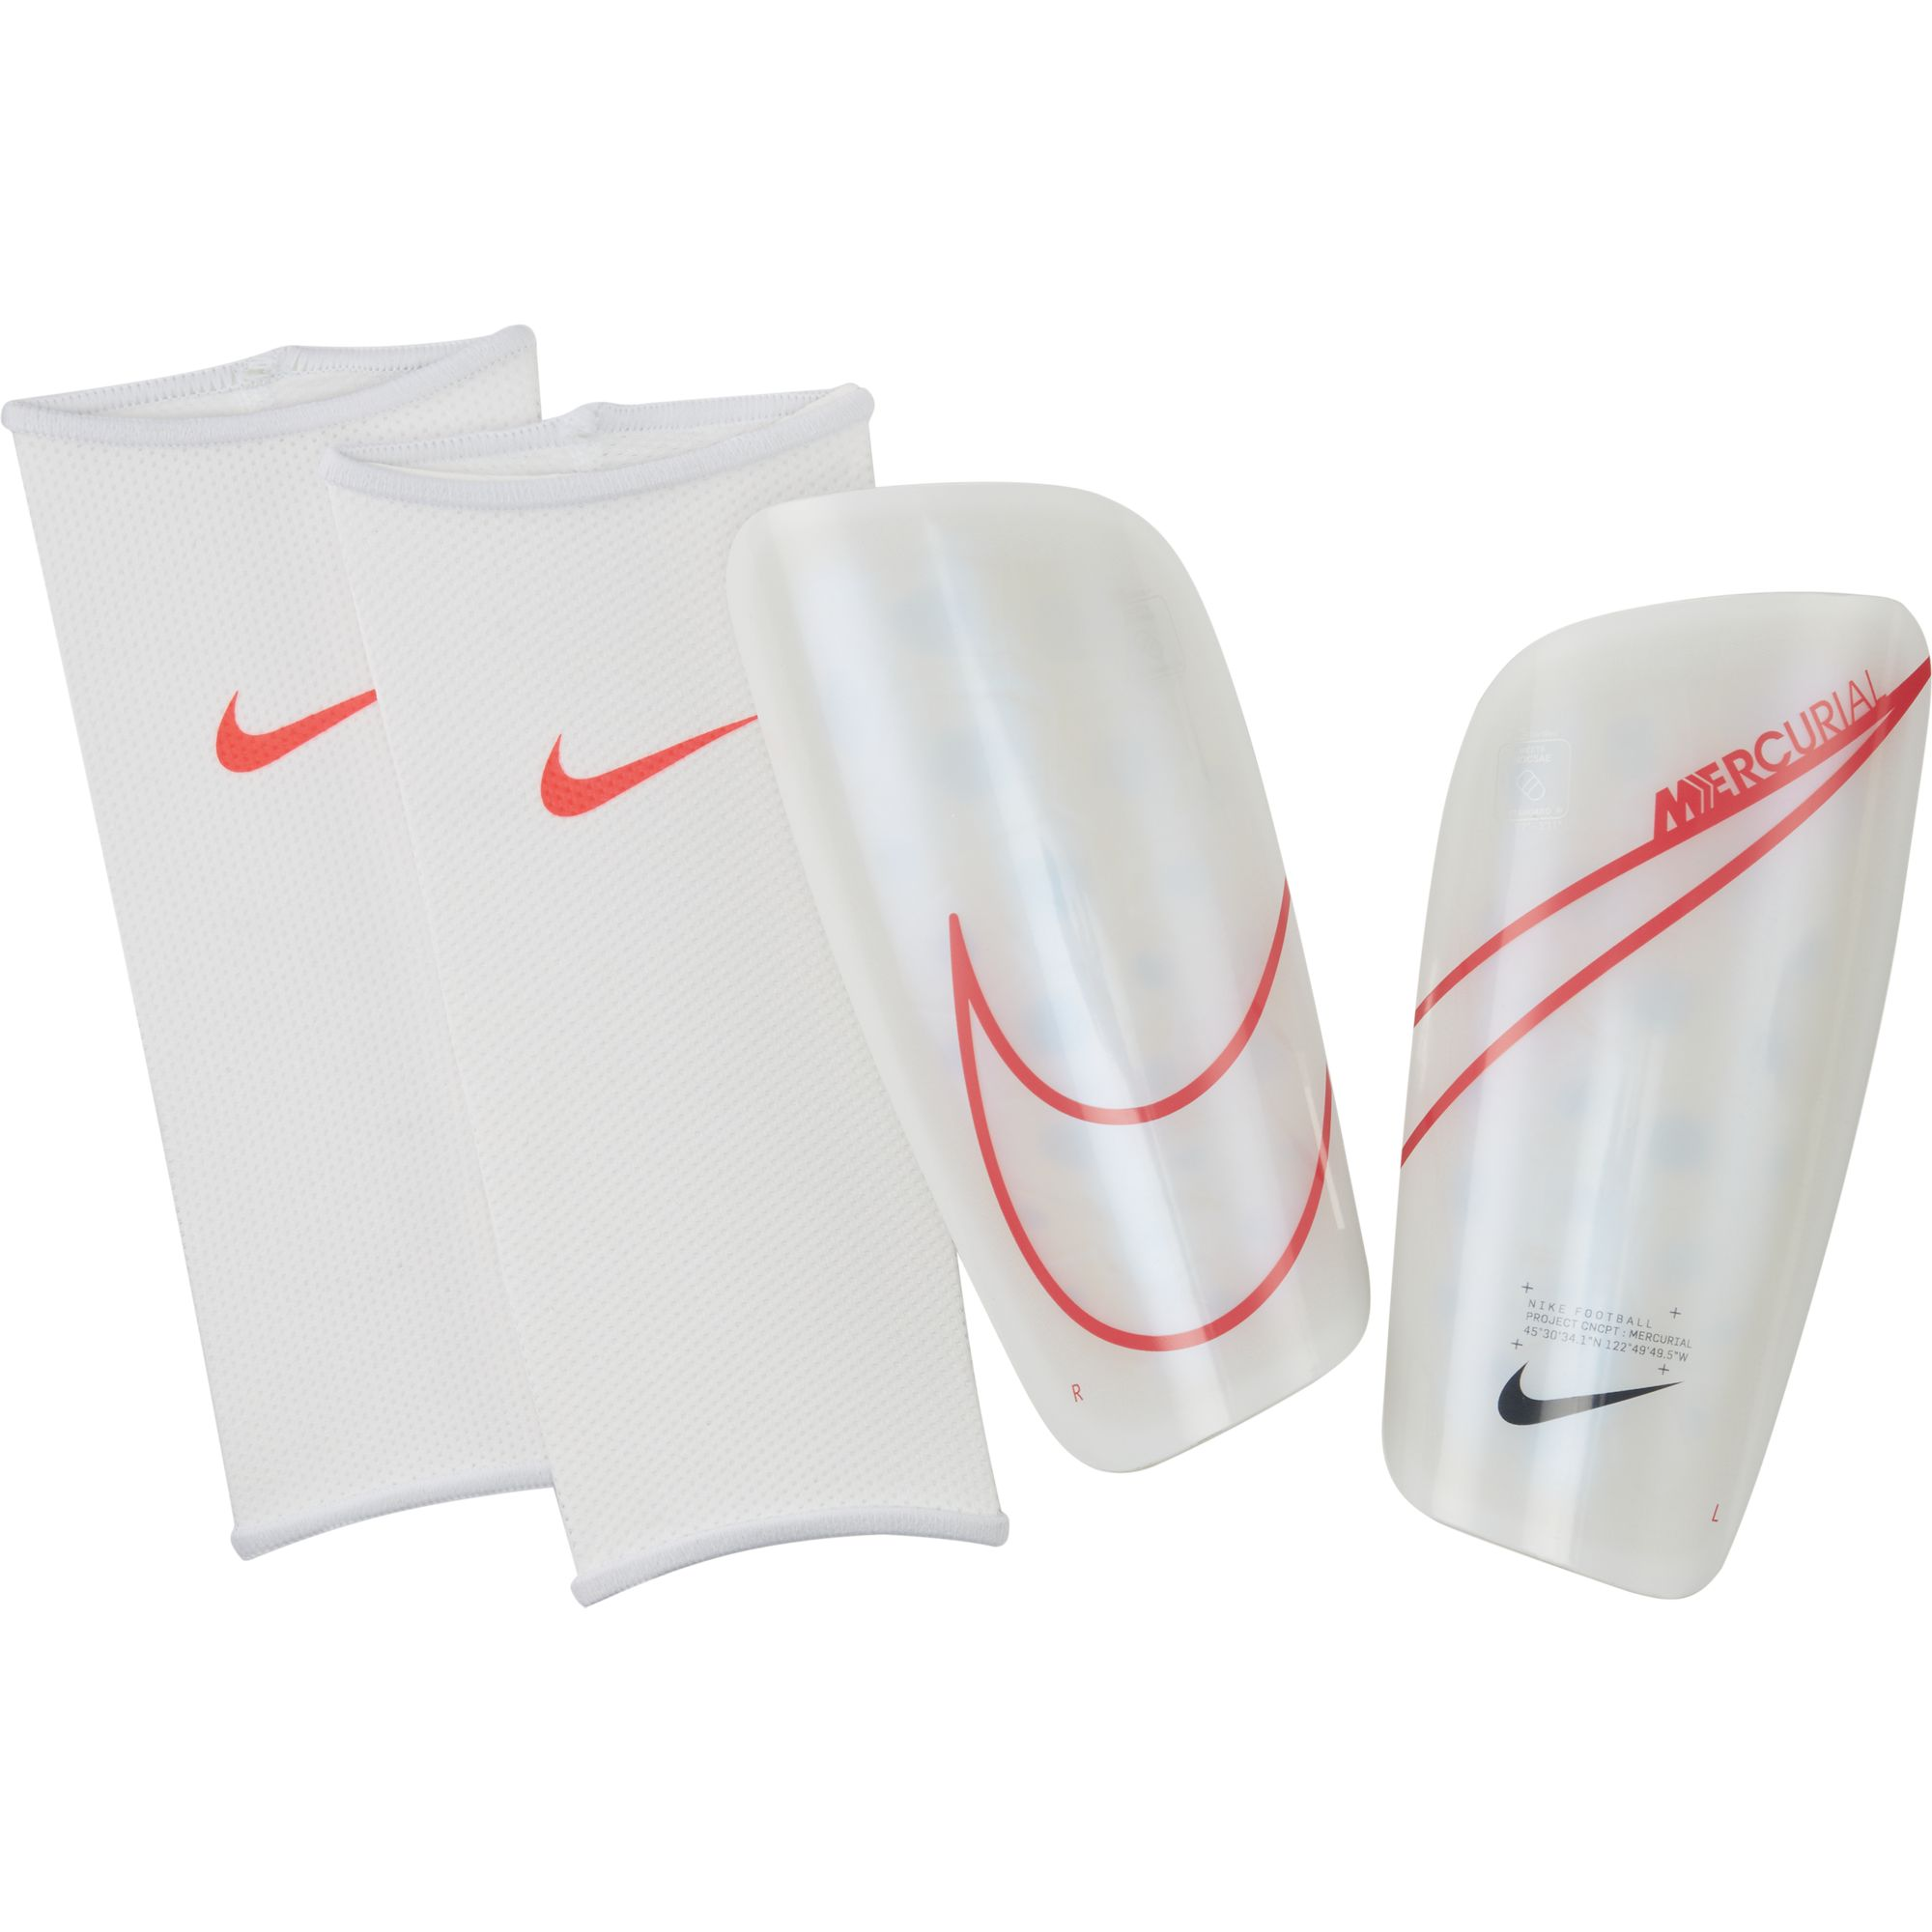 Mercurial Lite Shin Guards, White/Red/Black, swatch